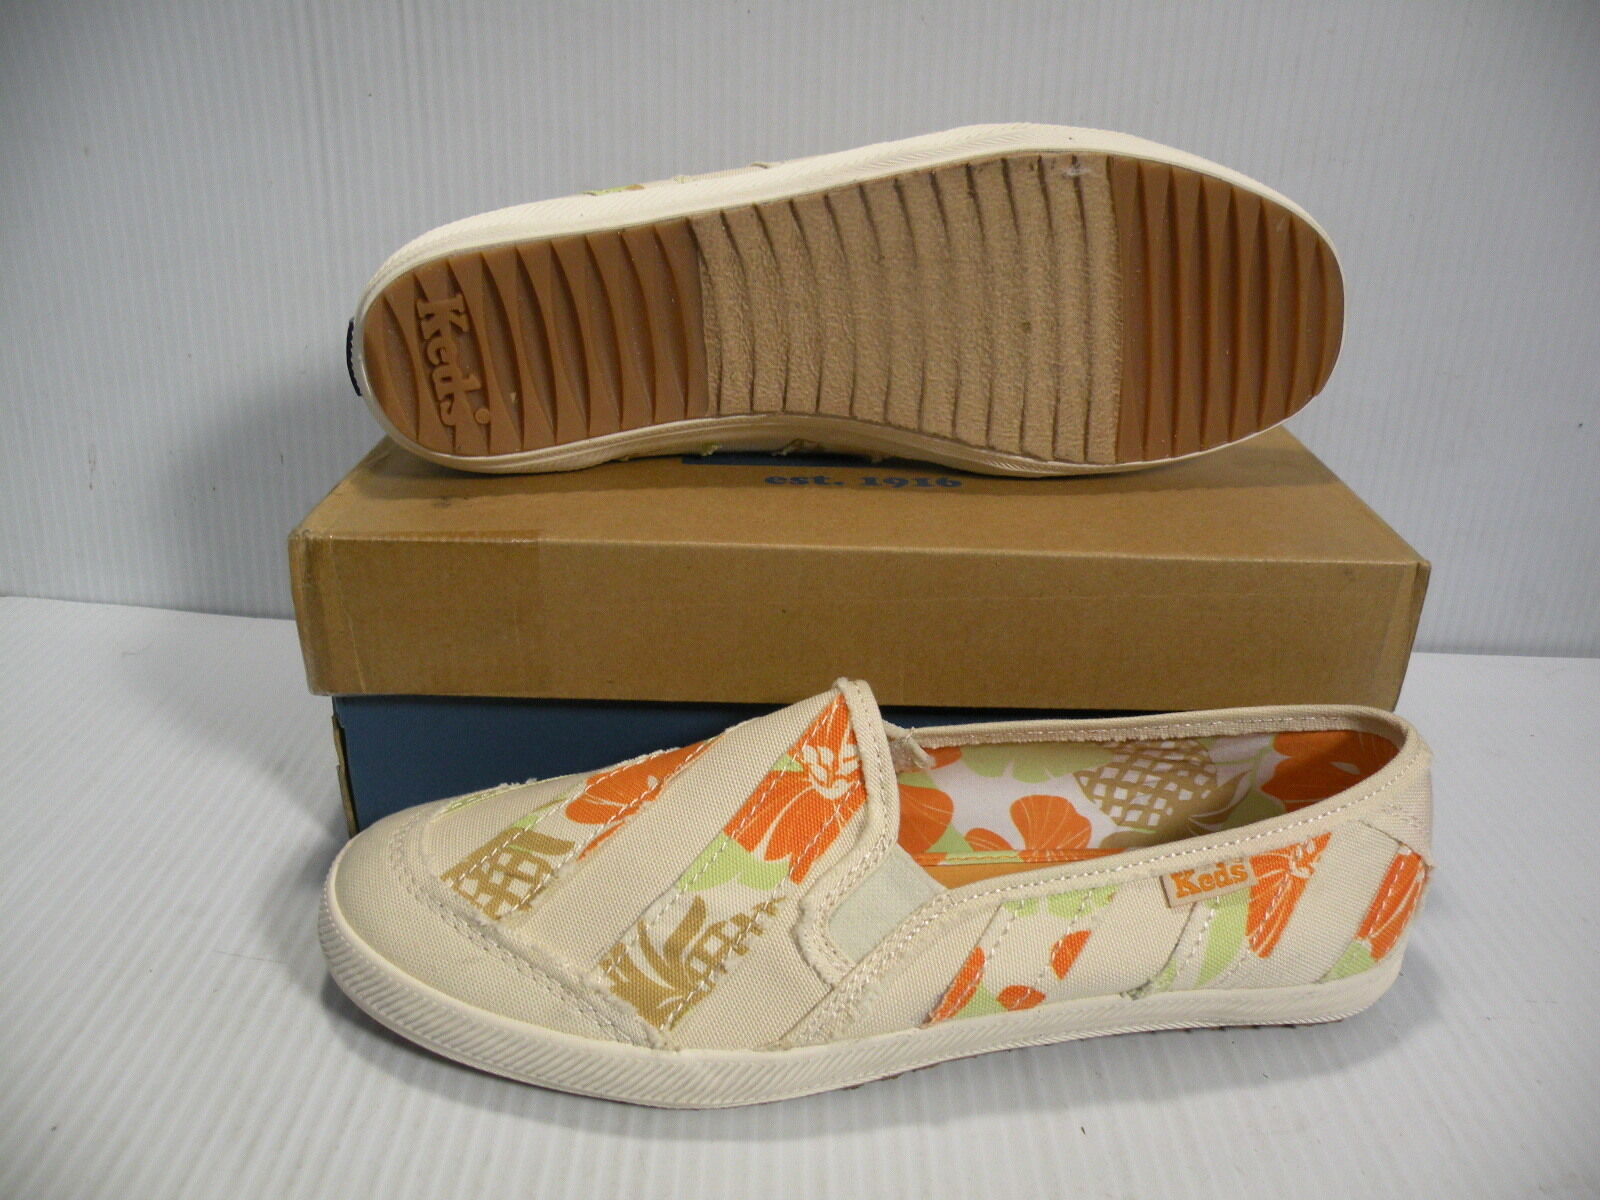 KEDS CH MOSAIC STRIPE LOW femmes chaussures blanc Orange WF20888 Taille 9 NEW